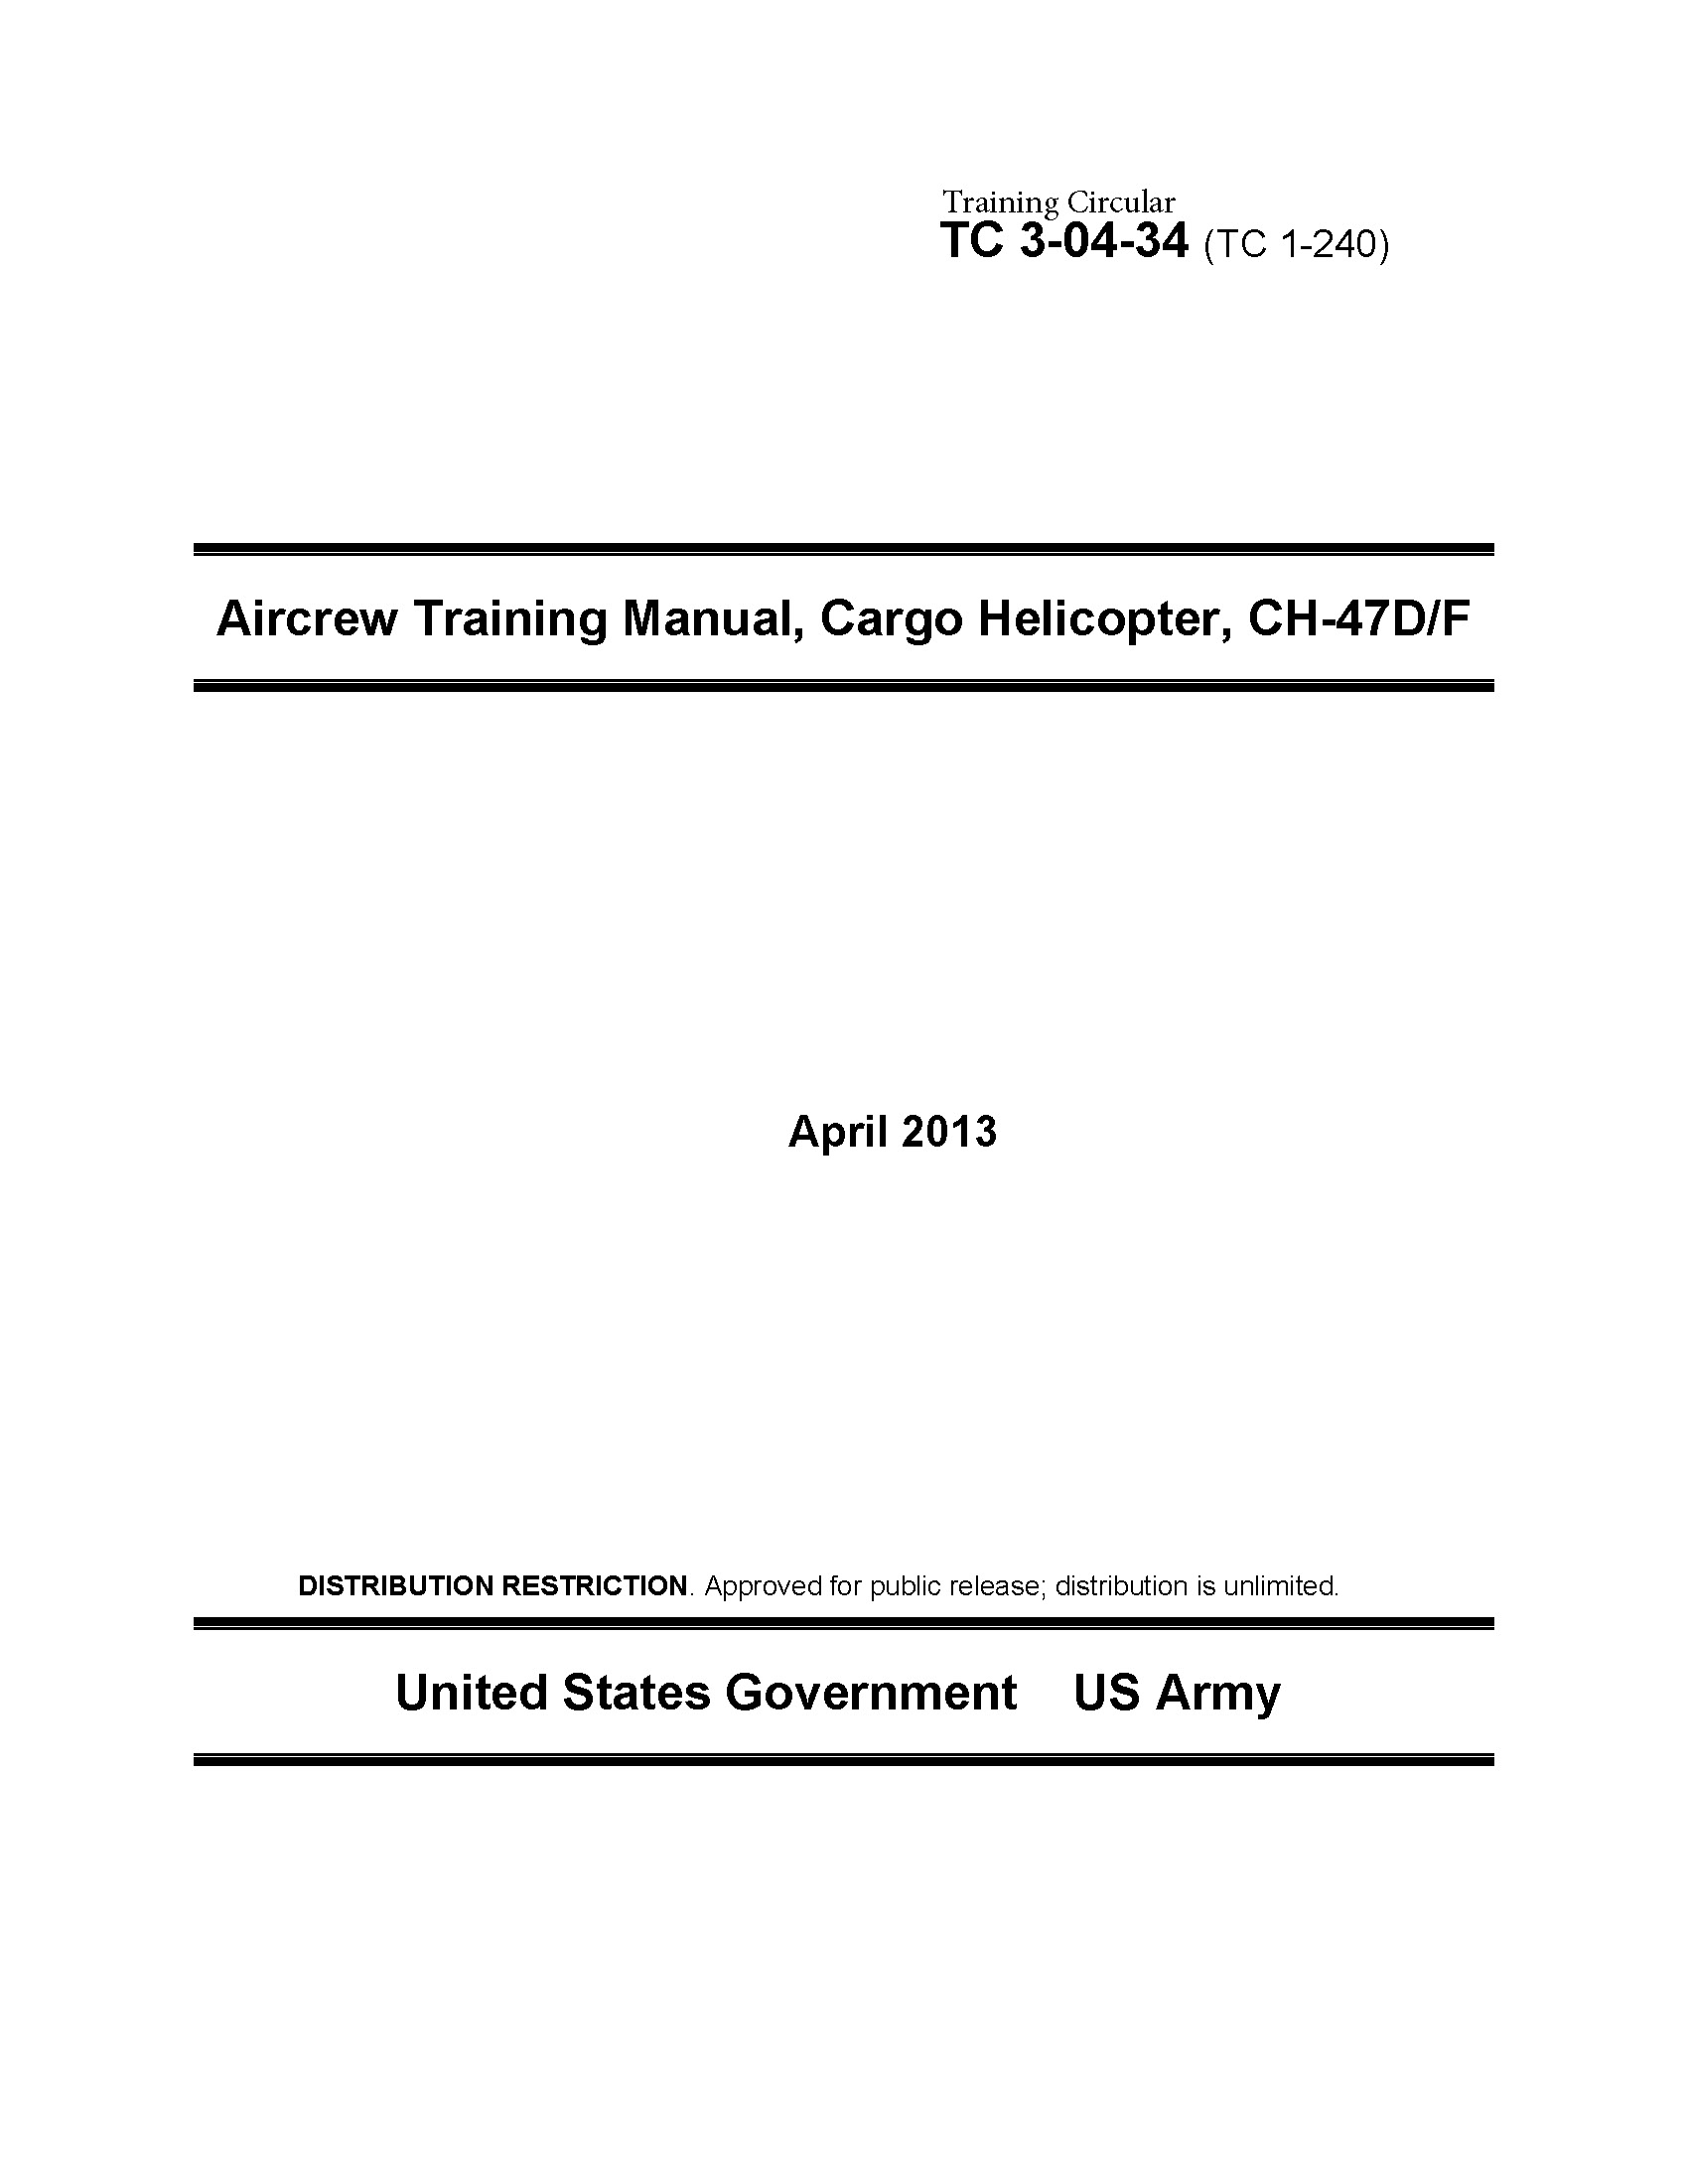 Training Circular TC 3-04-34 (TC 1-240) Aircrew Training Manual, Cargo Helicopter, CH-47D/F April 2013